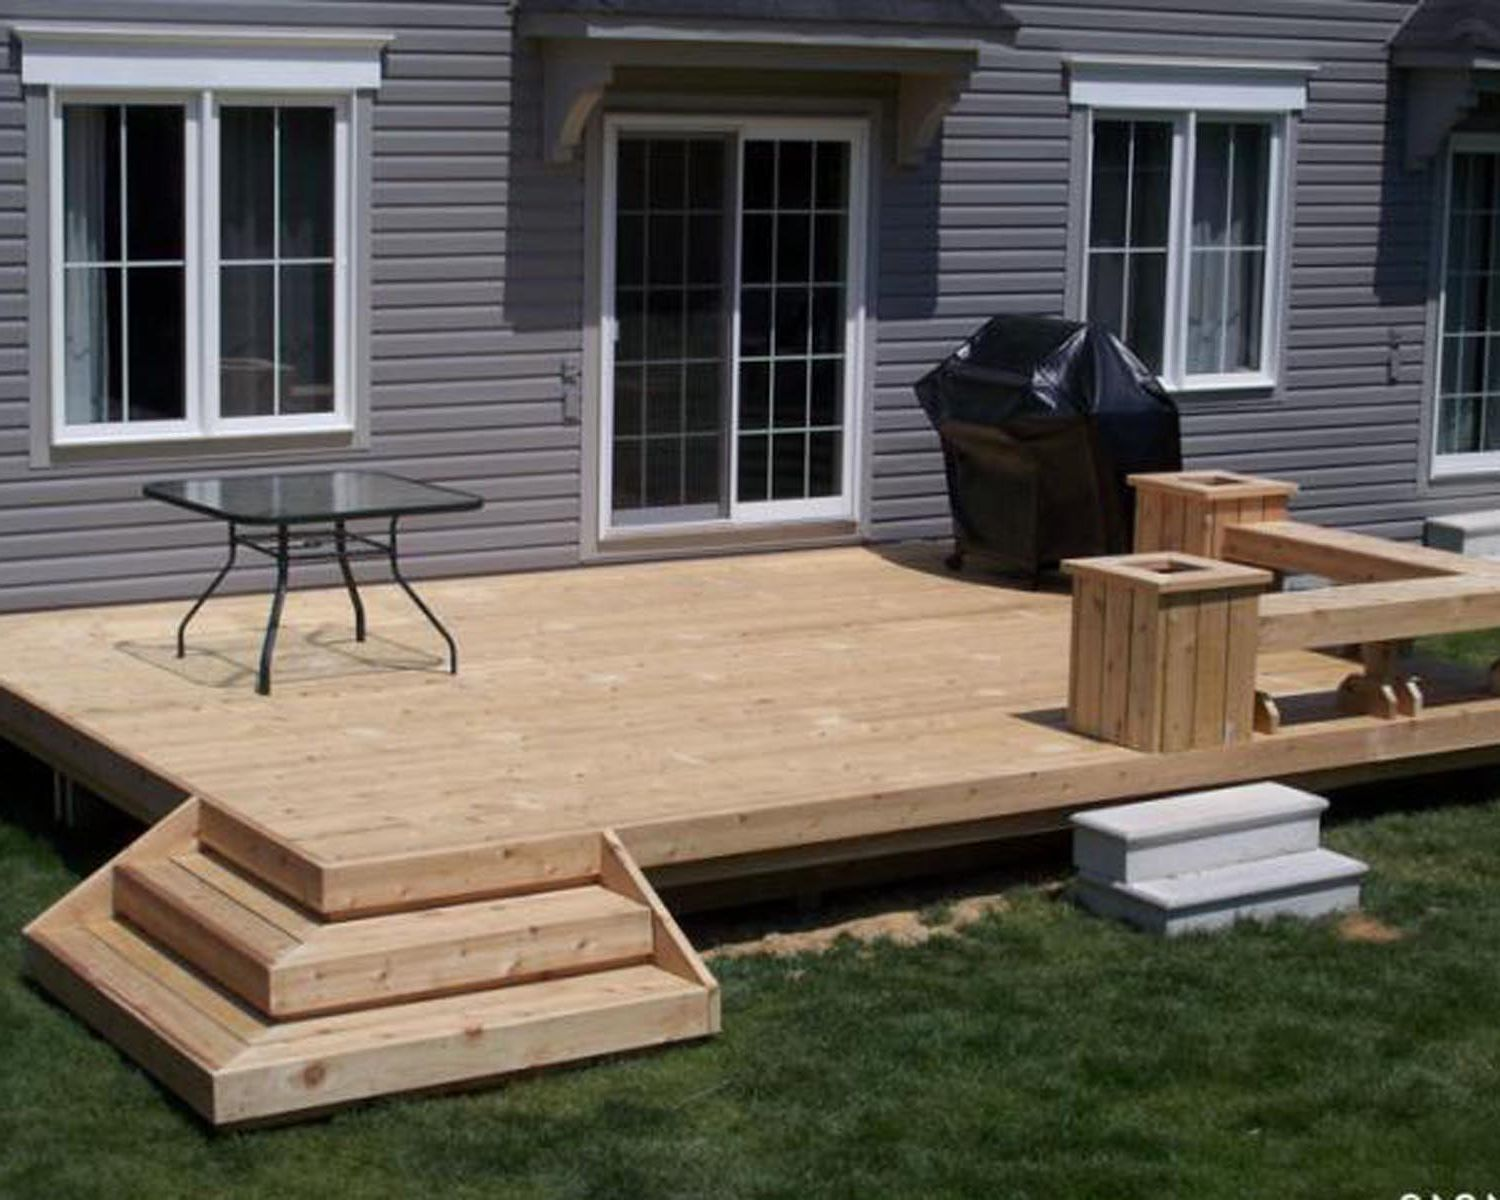 Deck Designs For Small Yards | TcWorks.Org on Small Back Deck Decorating Ideas id=63946